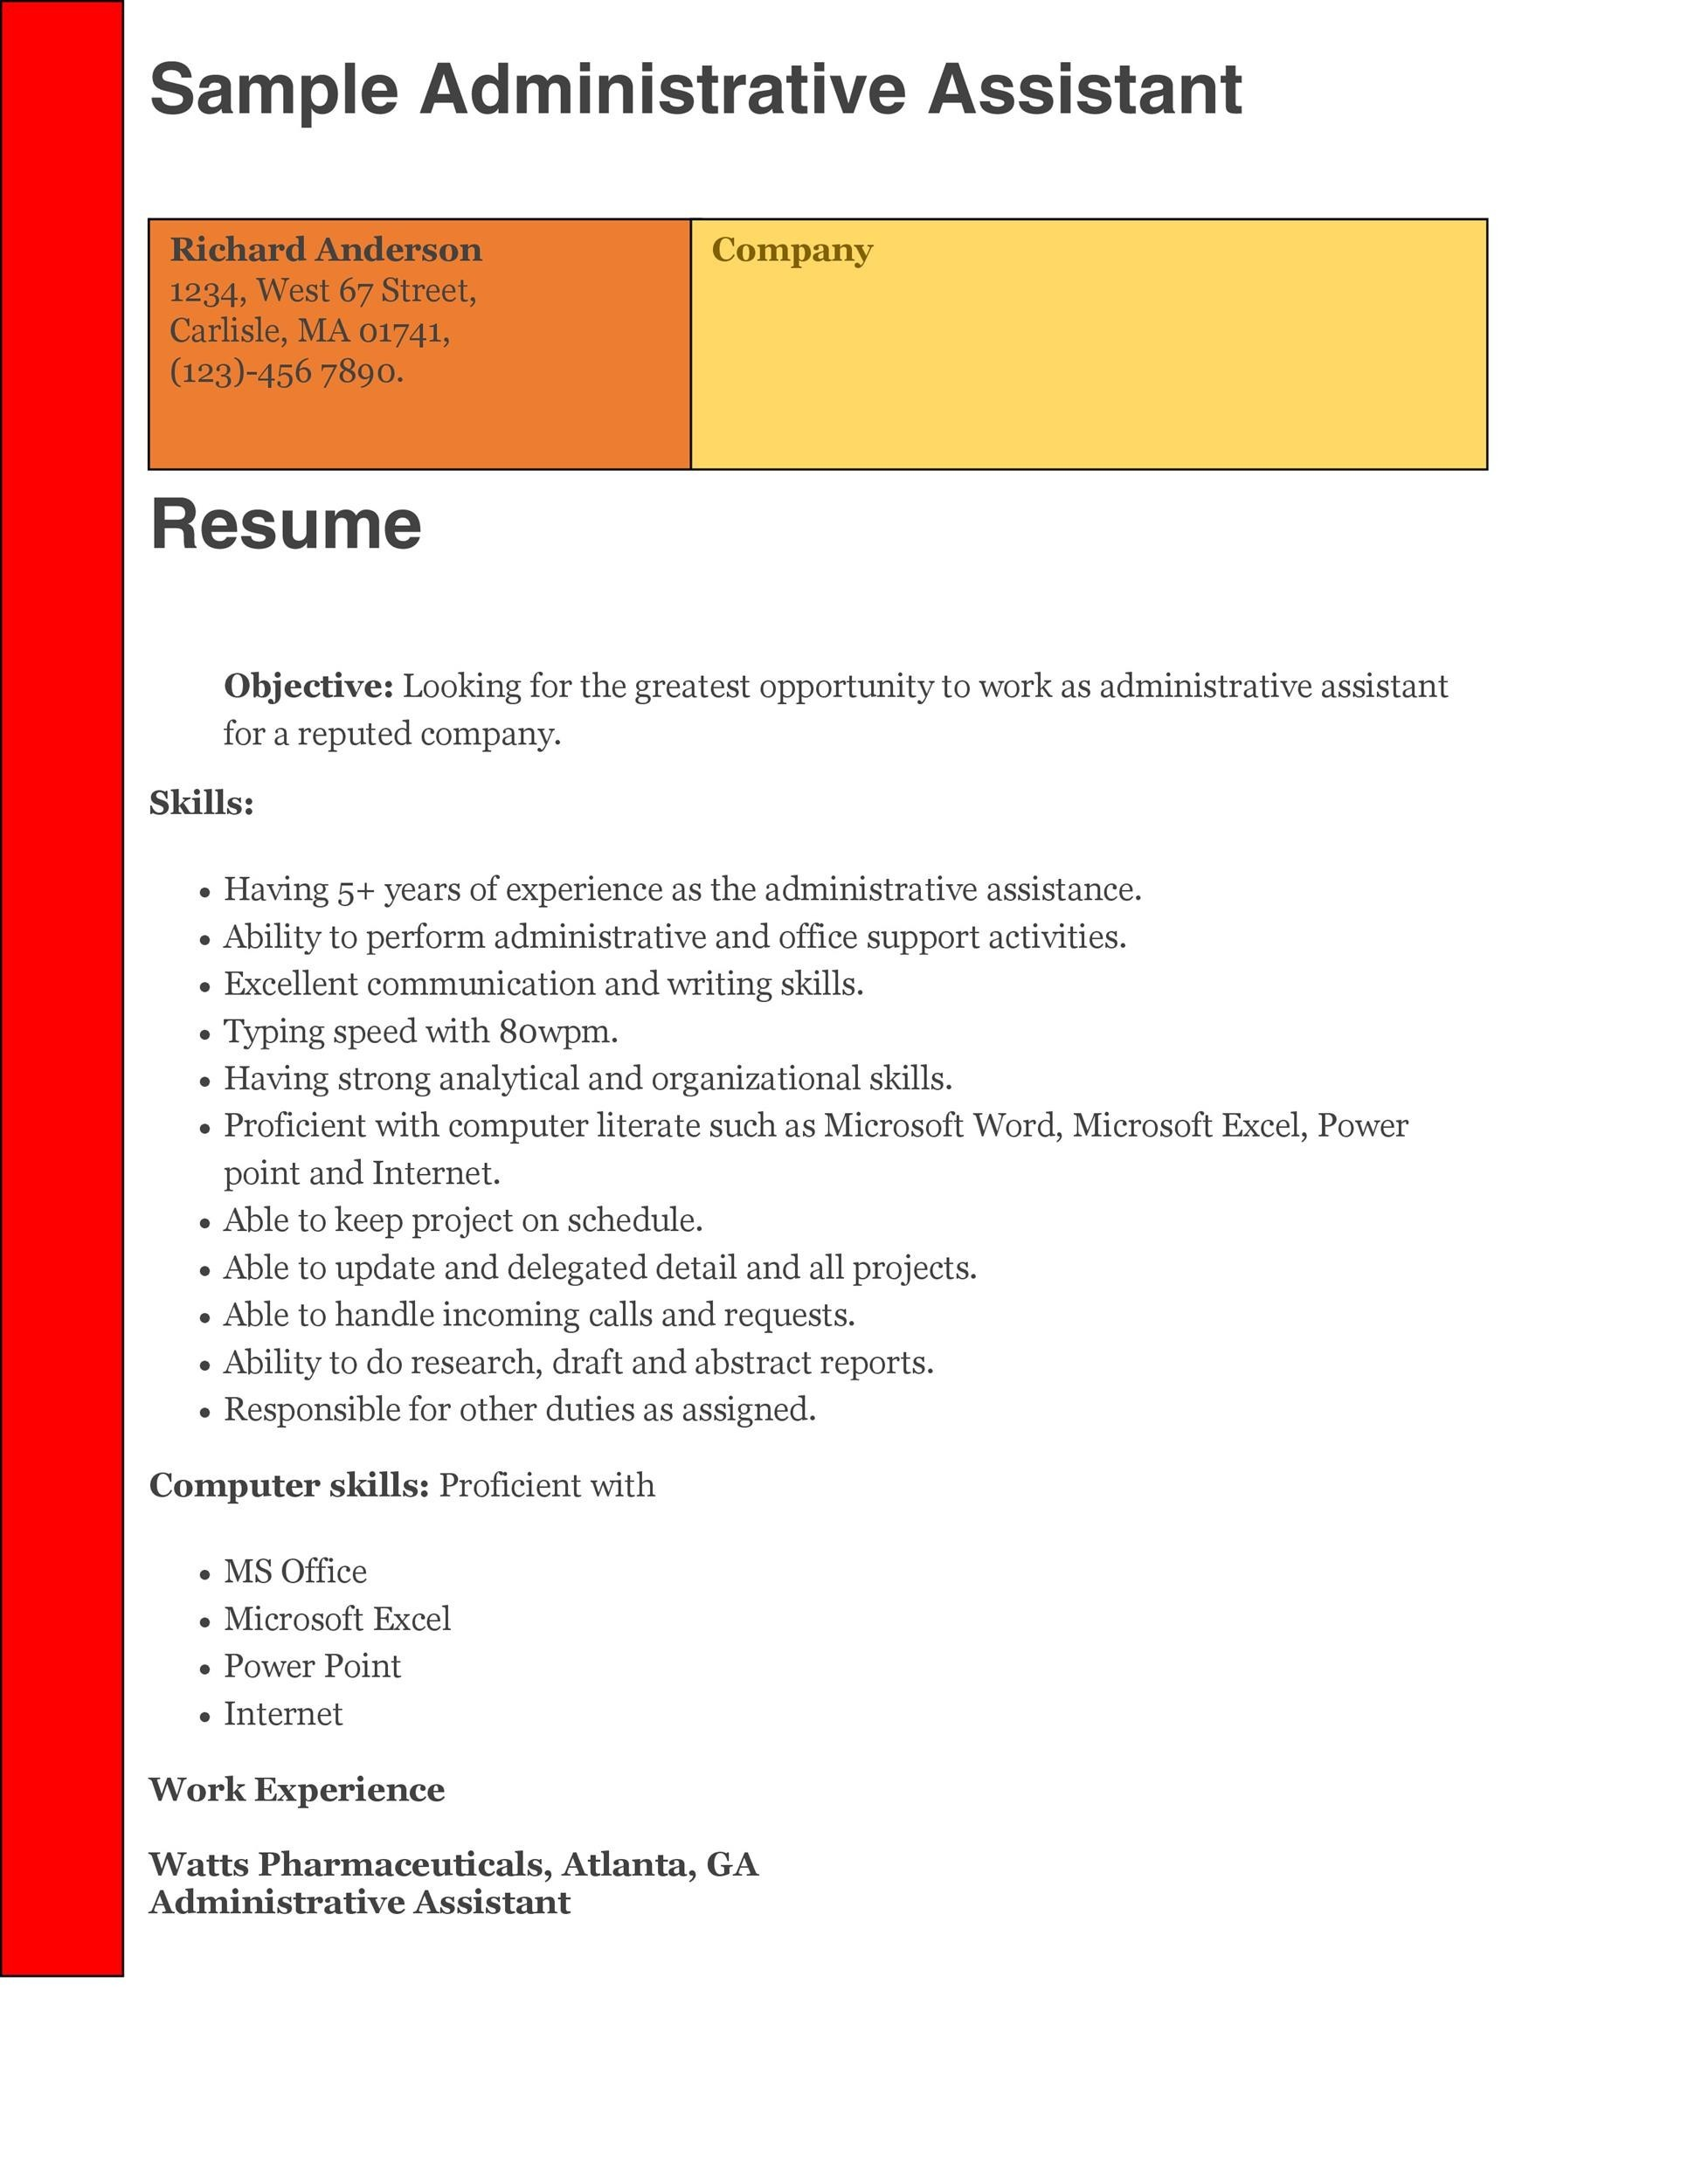 Free Administrative Assistant Resume Template 10